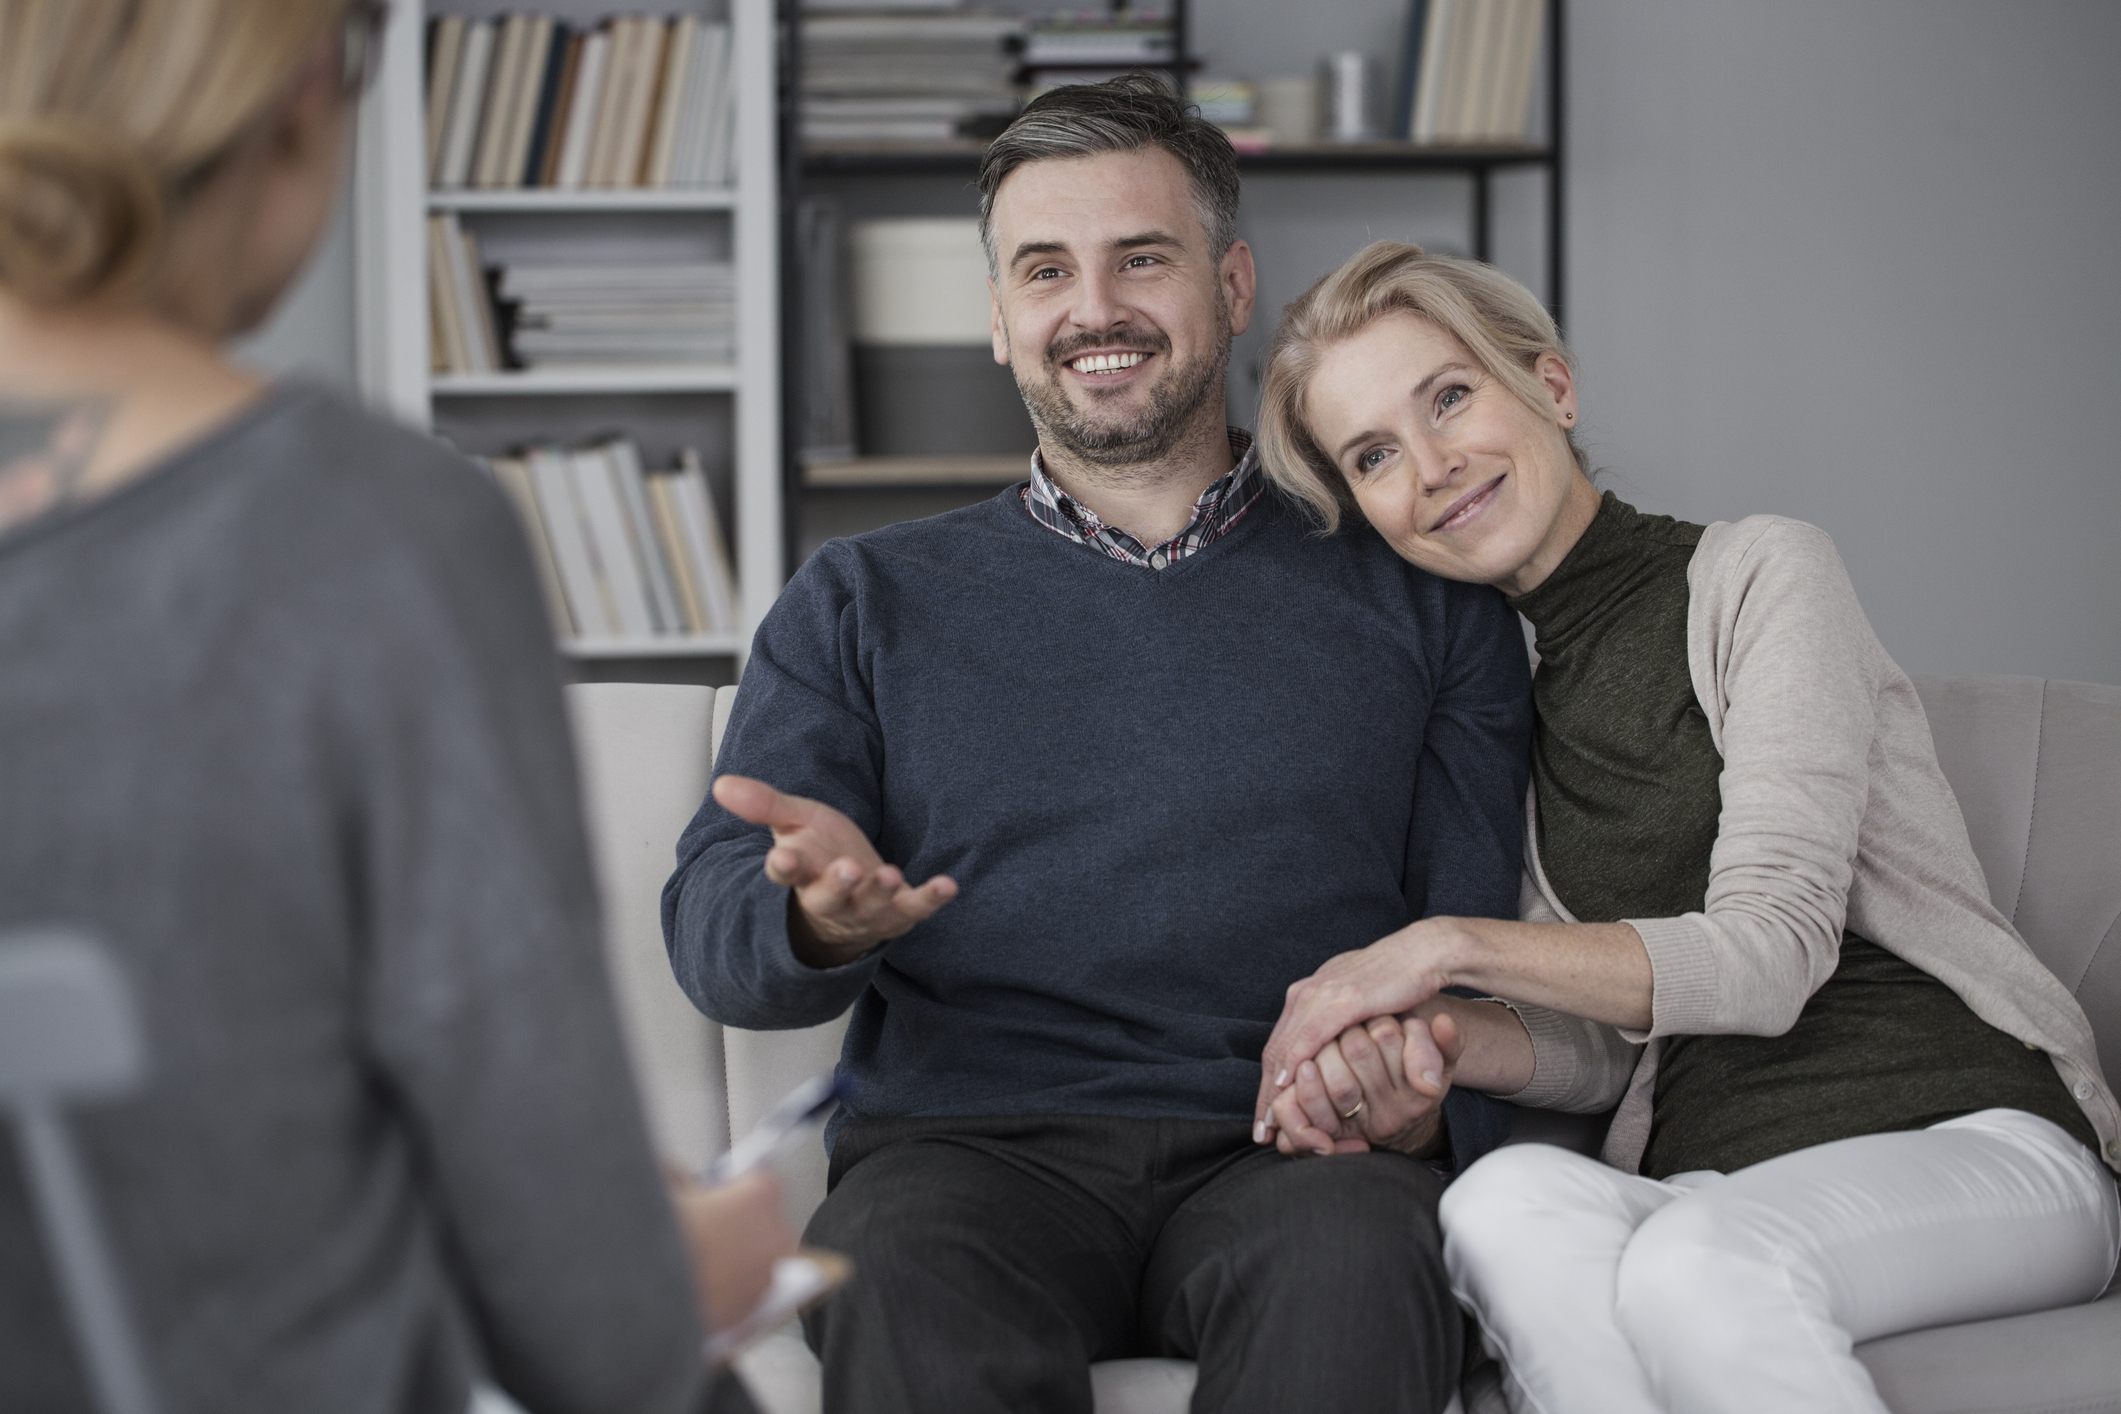 We Speak Relationship. - Our East Bay, Walnut Creek, Marin, Napa Valley & San Francisco Couples Therapists, Sex & Intimacy Therapists, psychologists, Counselors and Sexologists, can help you have a happier and healthier relationship.